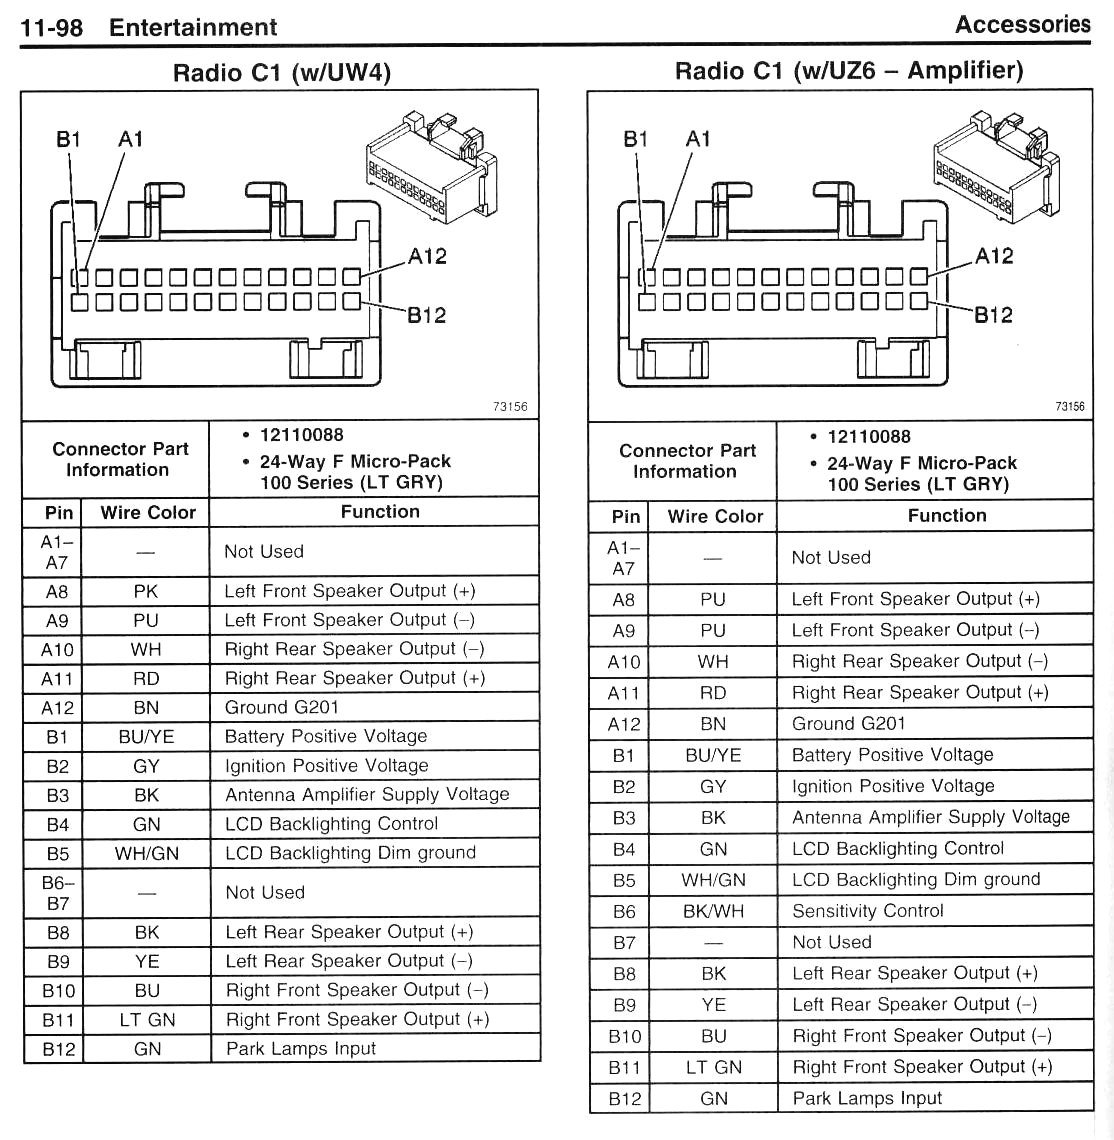 2003 Chevy Silverado Wiring Diagram | Manual E-Books - 2008 Chevy Silverado Wiring Diagram